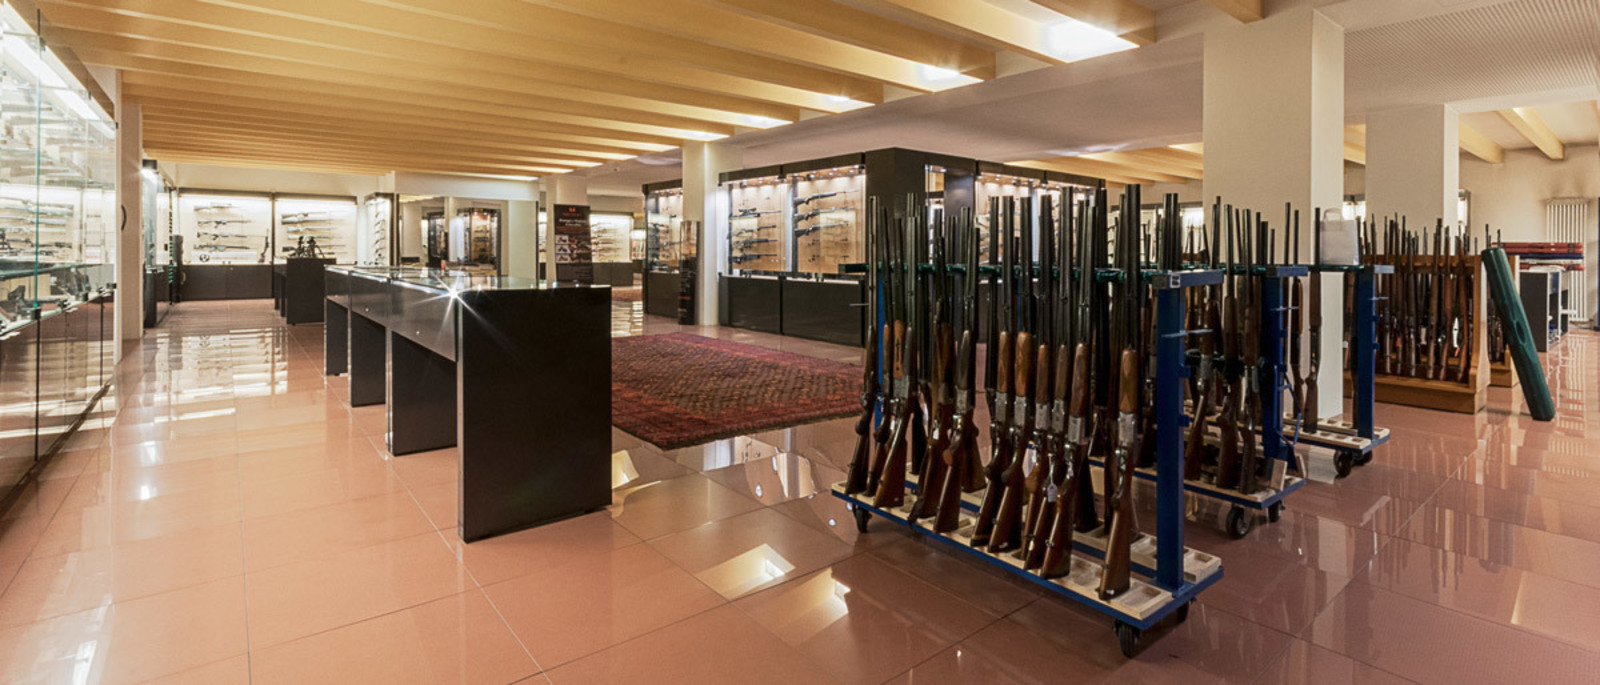 Hall with rifles and pistols exposed to the public